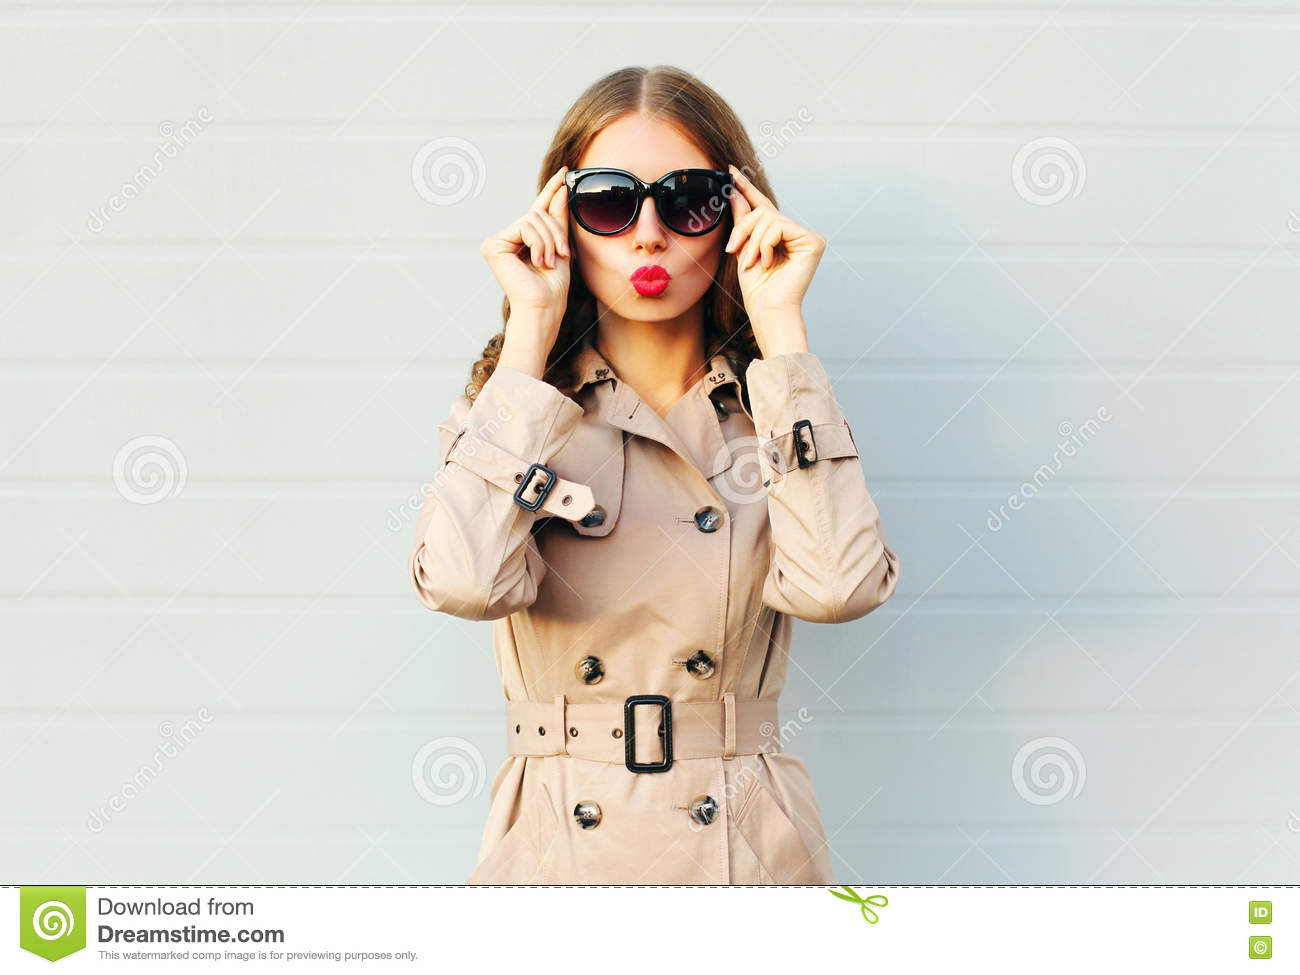 Fashion elegant pretty young woman blowing red lips wearing a black sunglasses coat over grey